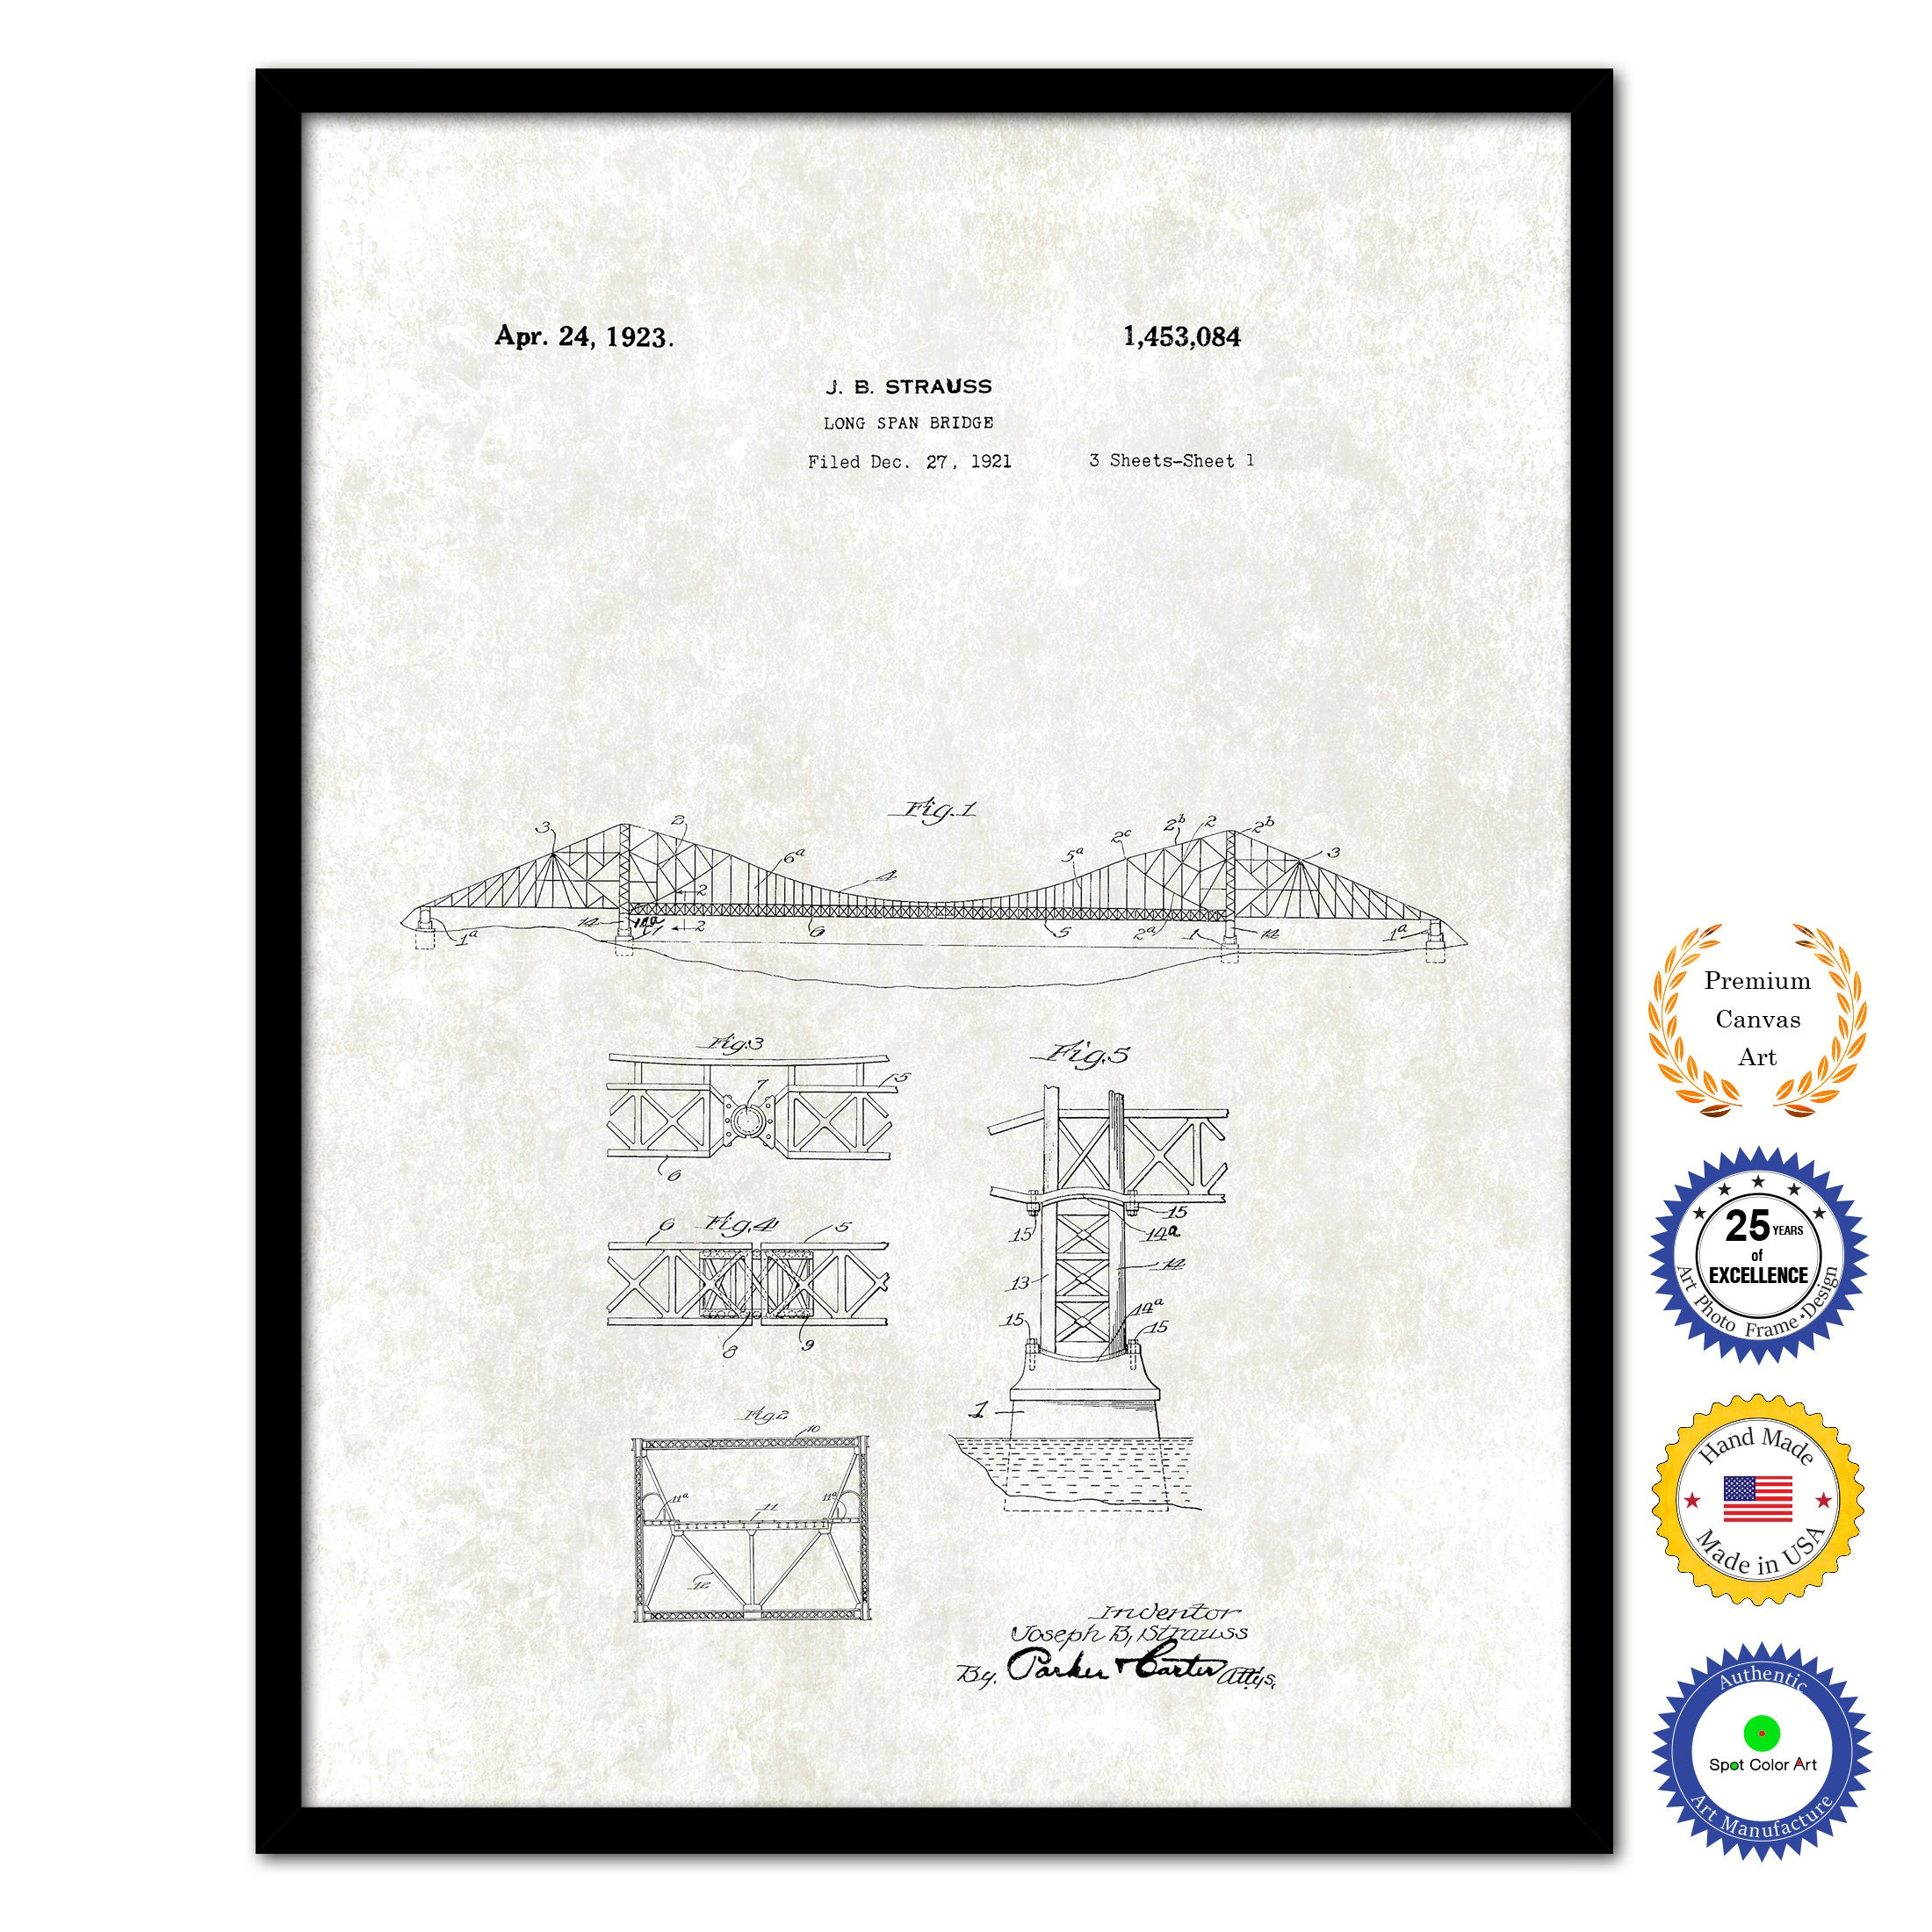 1923 Long Span Bridge Vintage Patent Artwork Black Framed Canvas Print Home Office Decor Great Gift for Engineers Architects Construction Workers